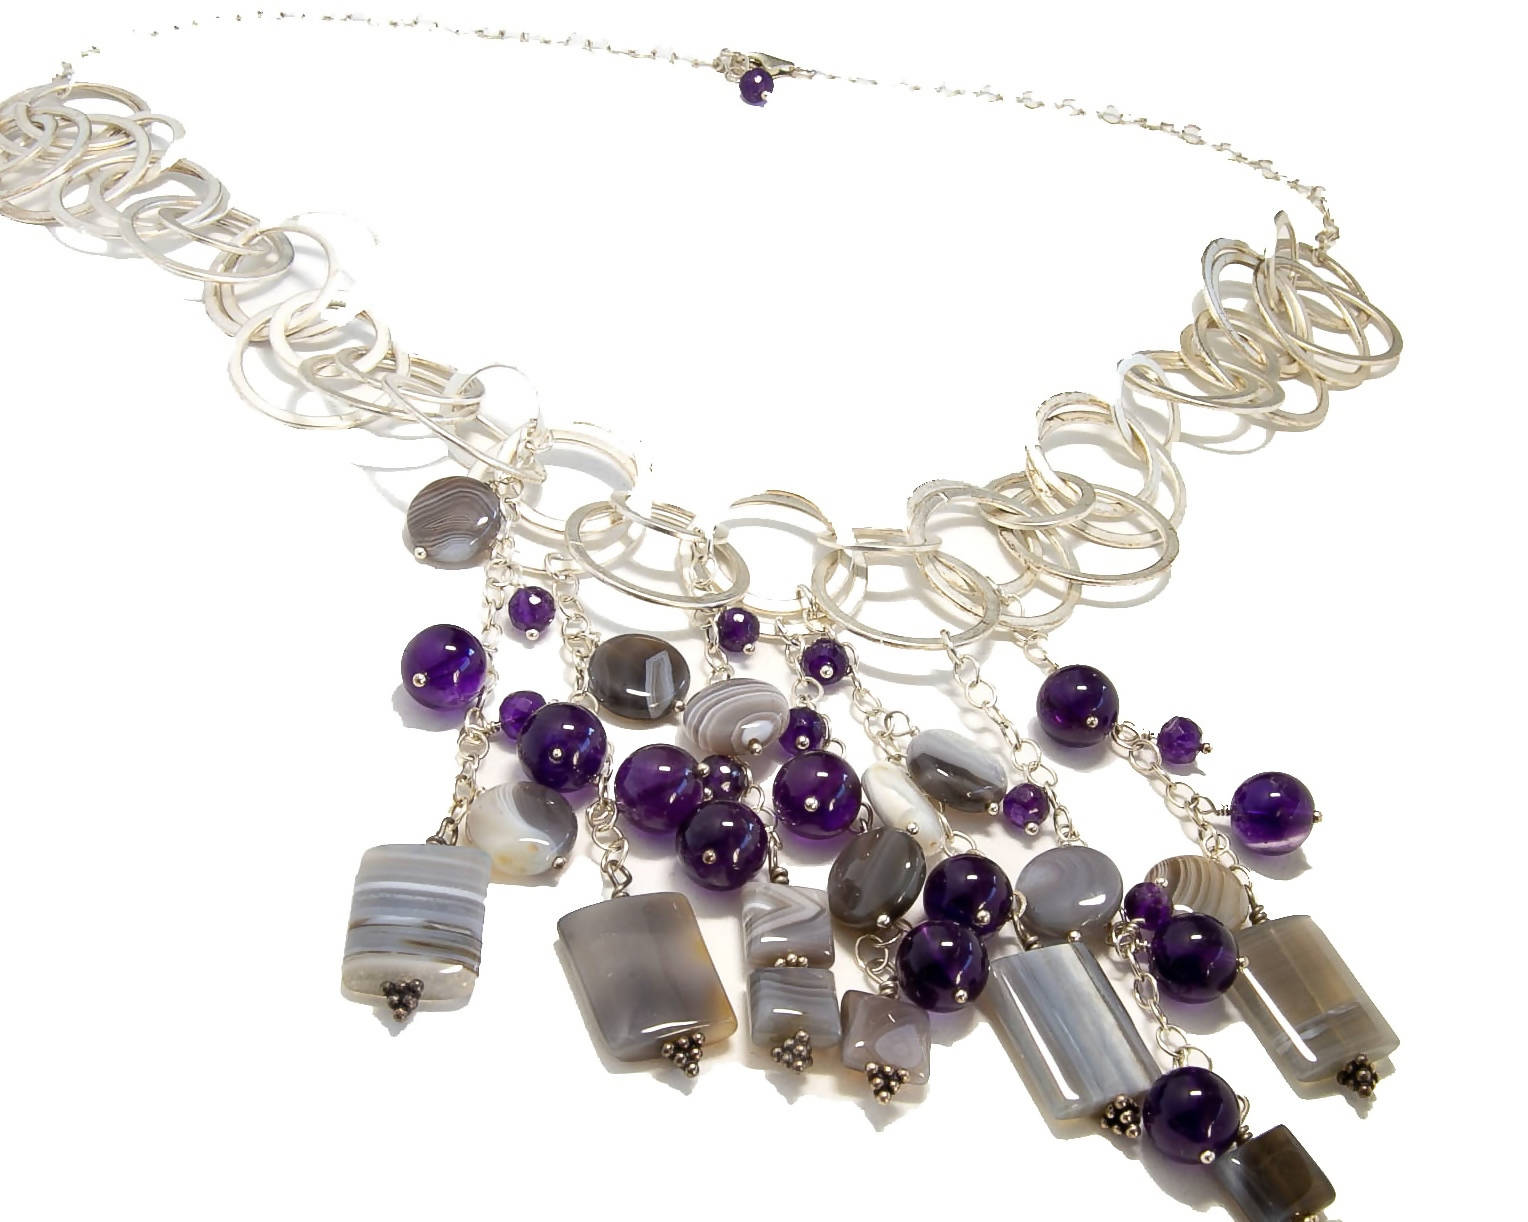 Amethyst and Botswana Agate Bib Necklace